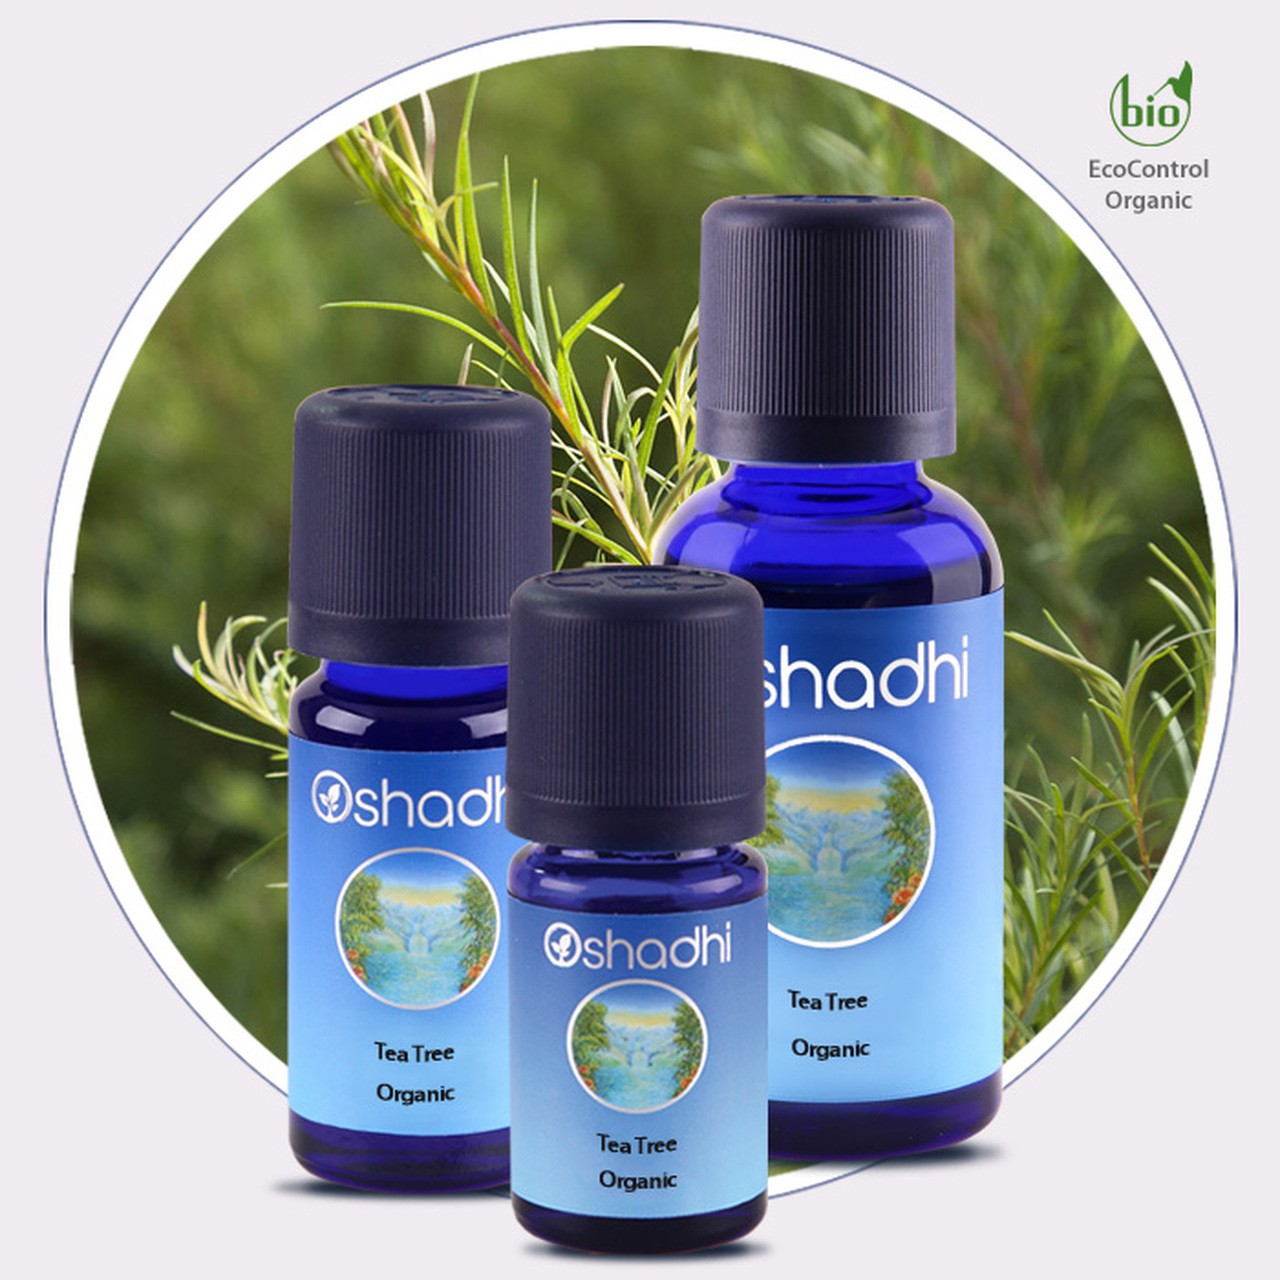 Tea Tree Organic Essential Oil (Oshadhi) 10ml